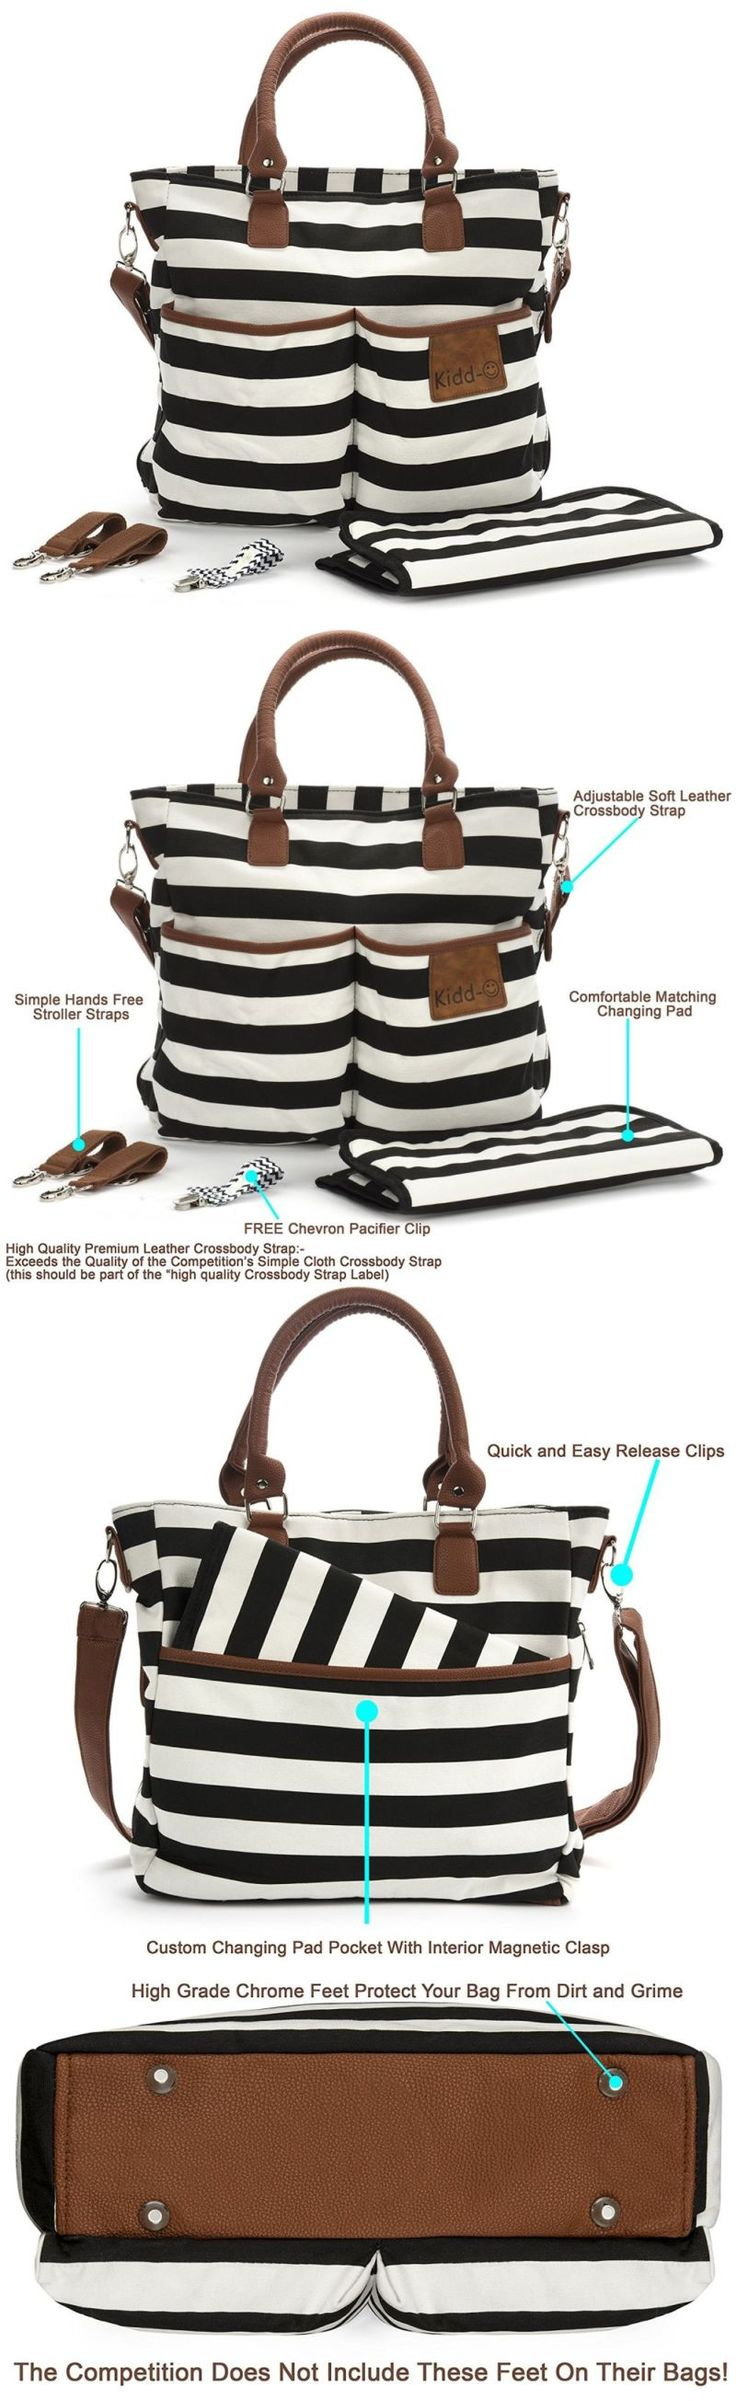 Diaper Bags 146530: Diaper Bag For Baby Boys And Girls - Mom Purse And Tote Organizer - Changing Pad -> BUY IT NOW ONLY: $35.54 on eBay!